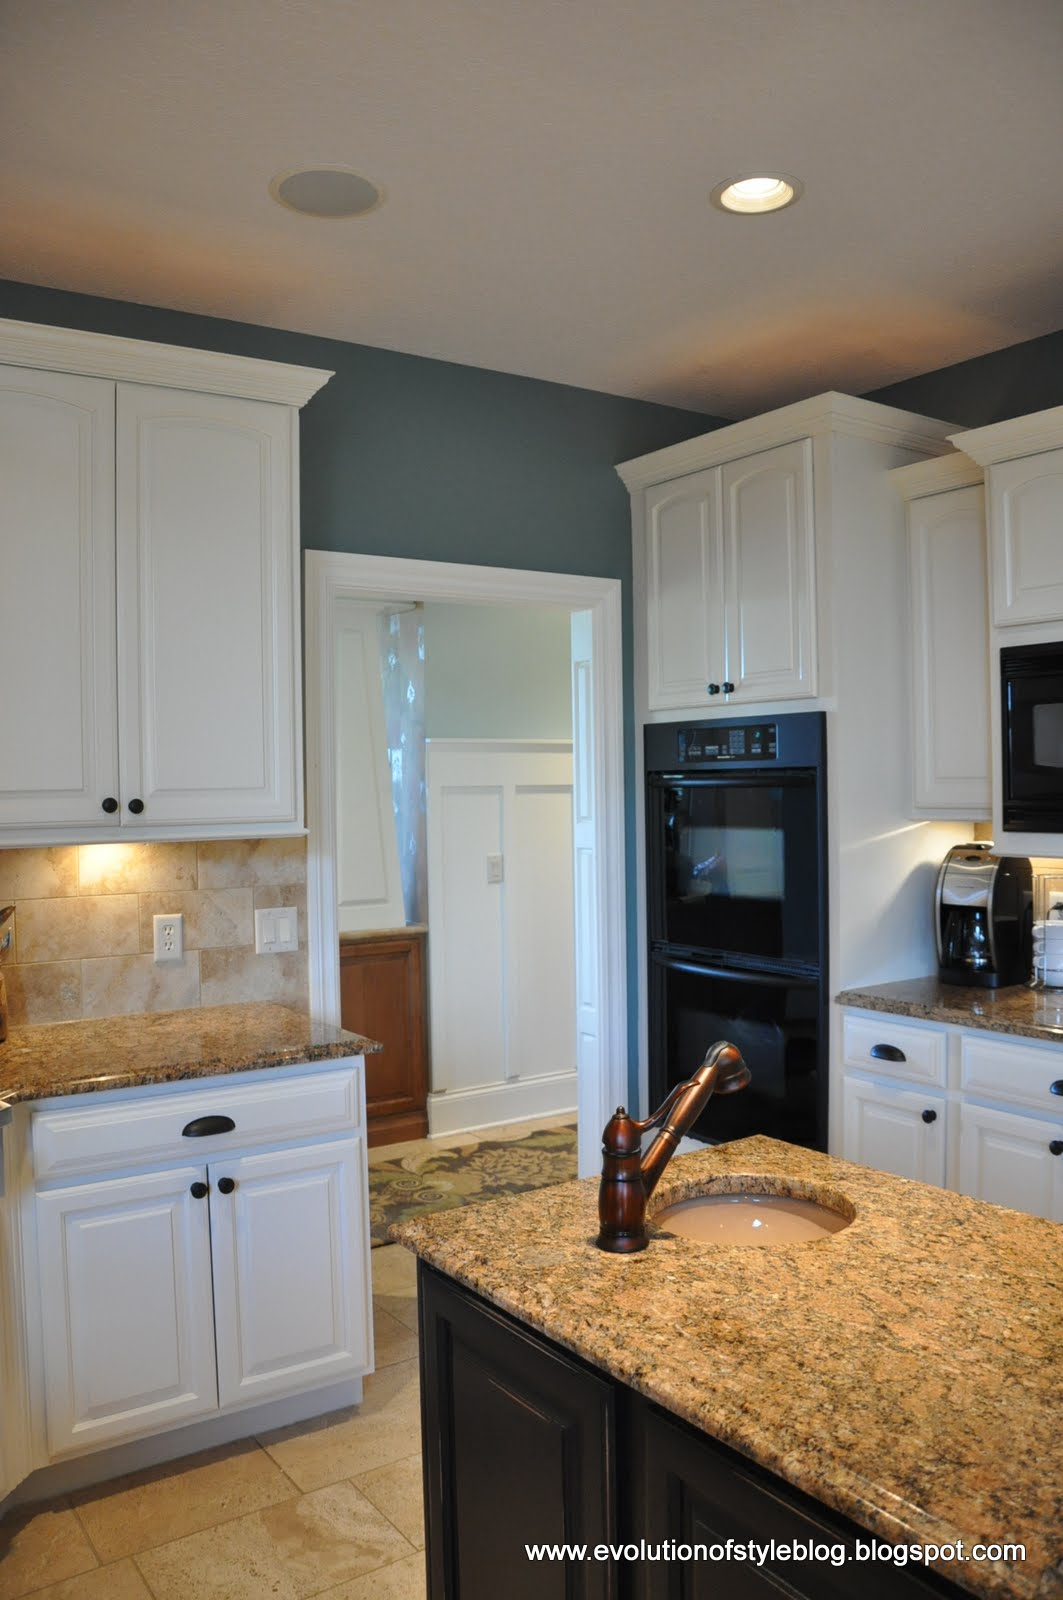 How to Paint Your Kitchen Cabinets (like a pro) - Evolution of Style